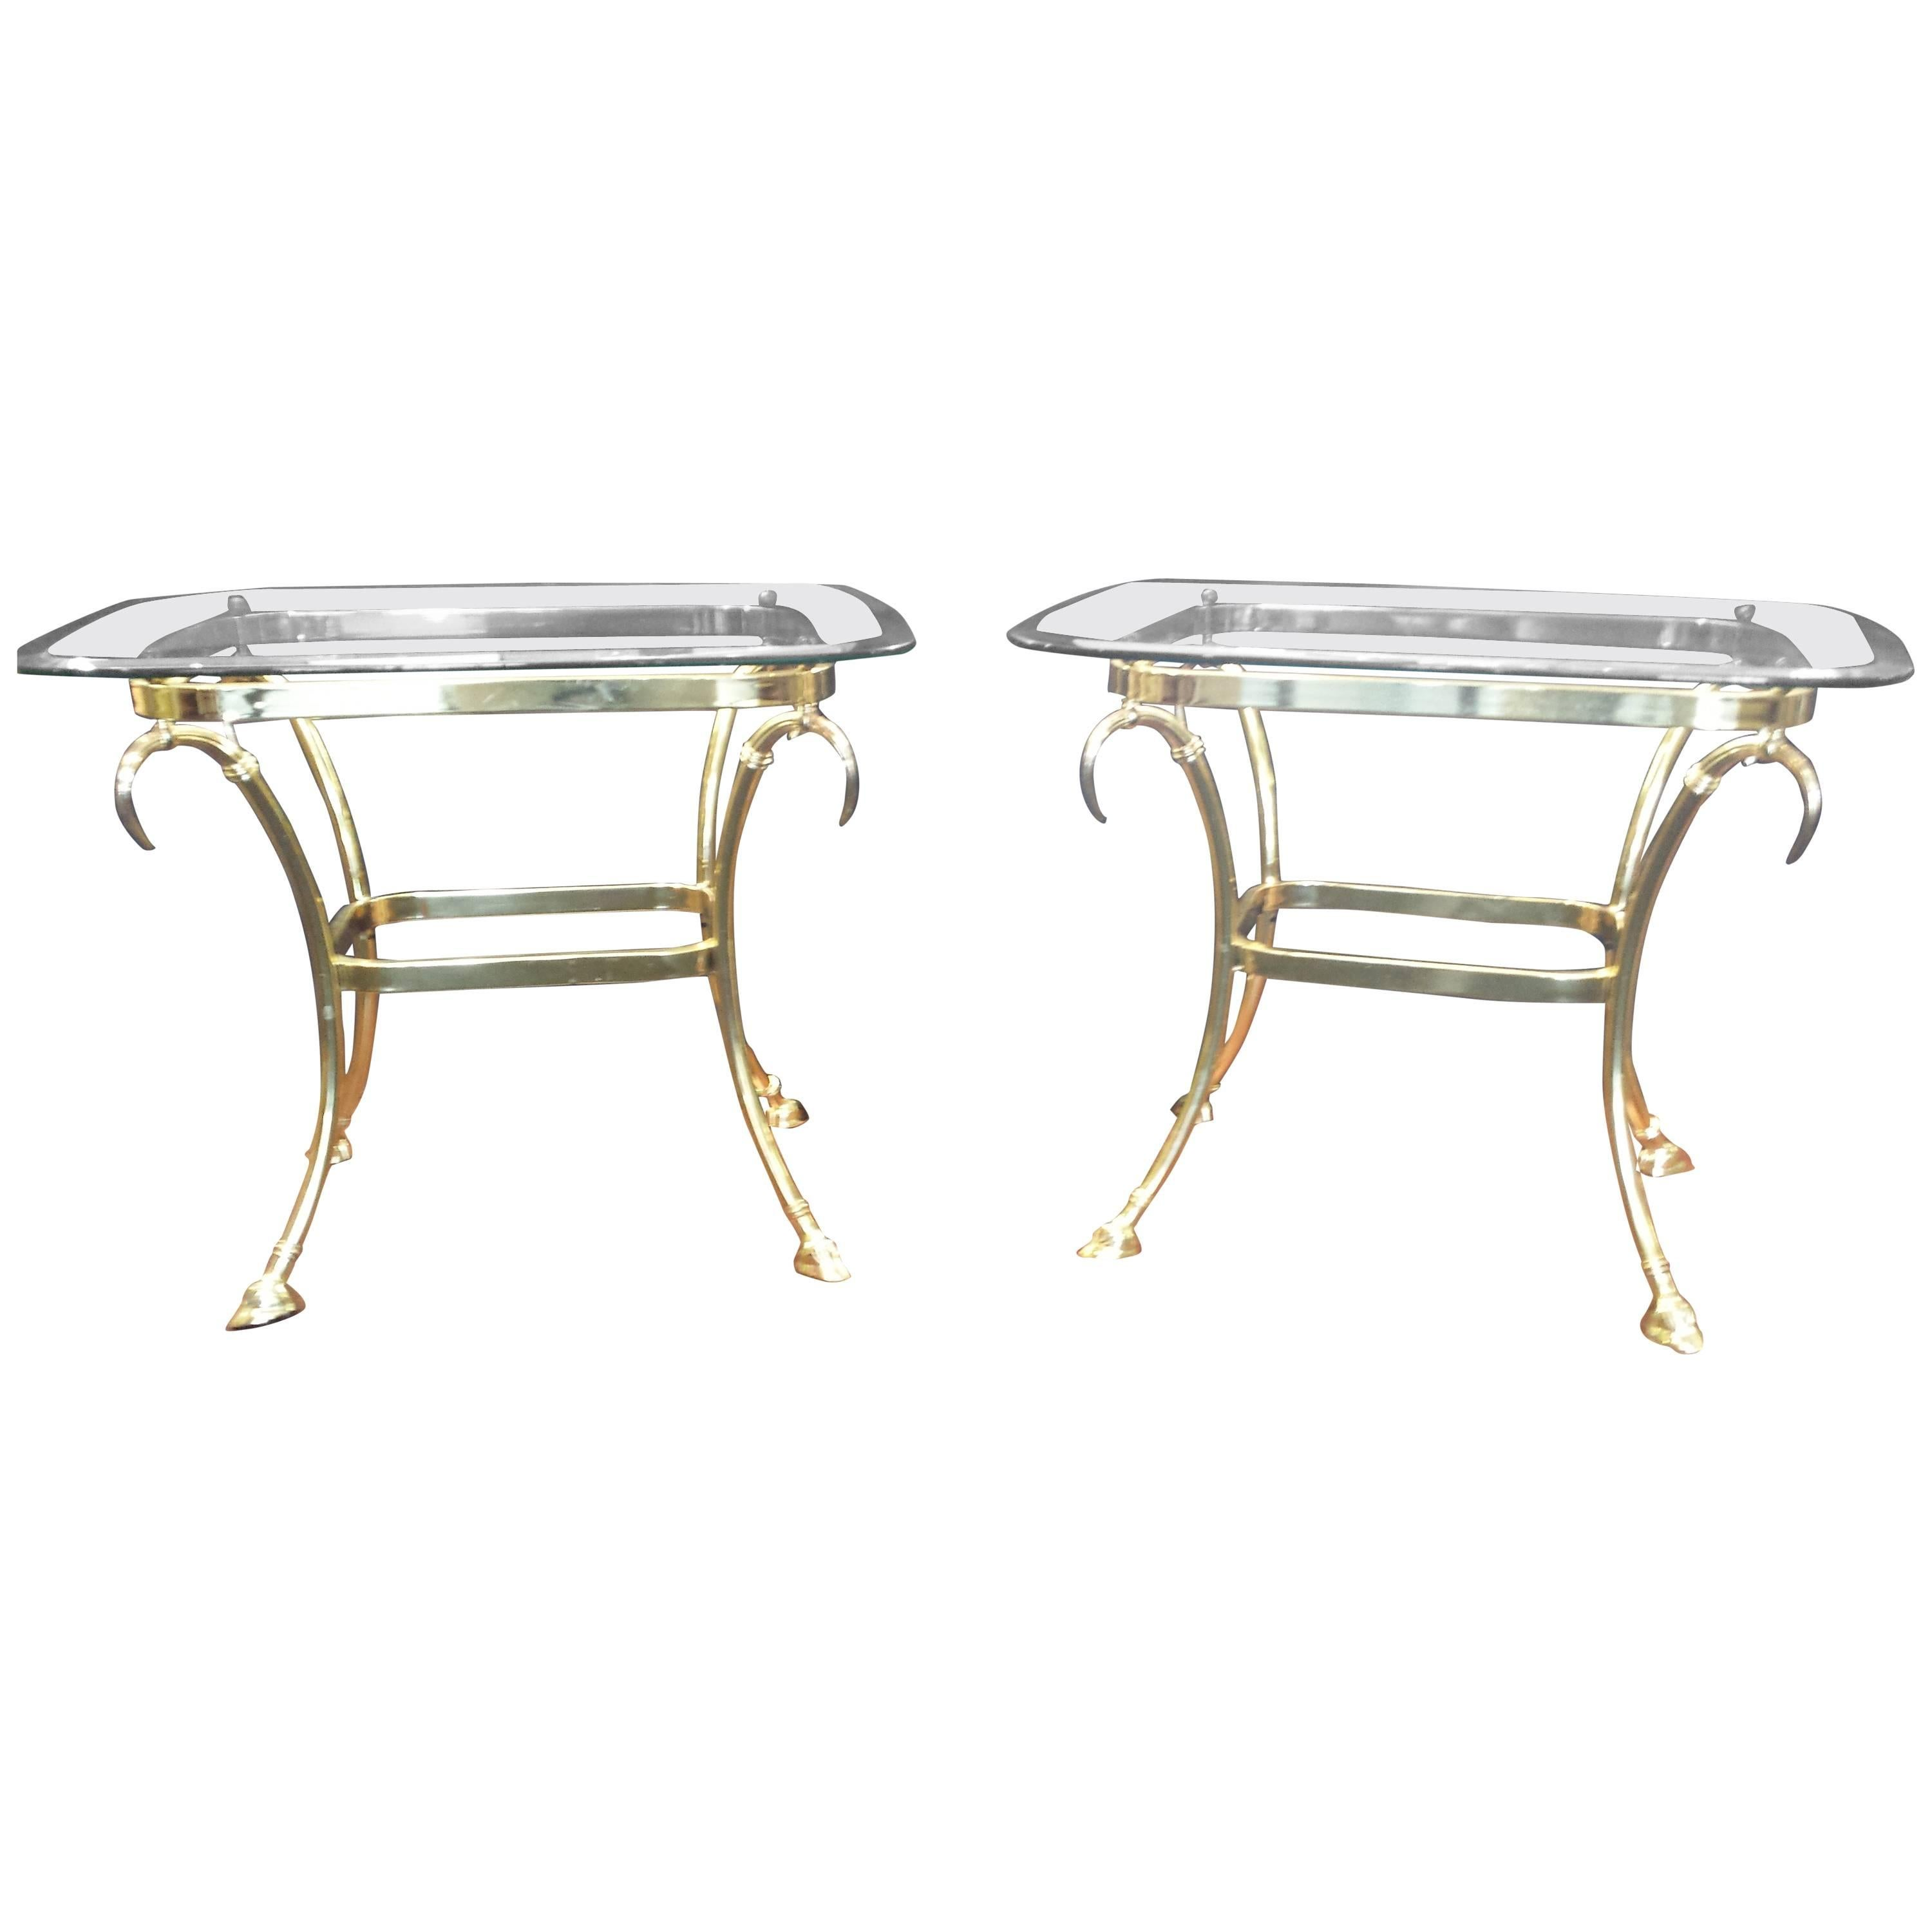 Pair of Hollywood Regency Brass and Glass Side Tables